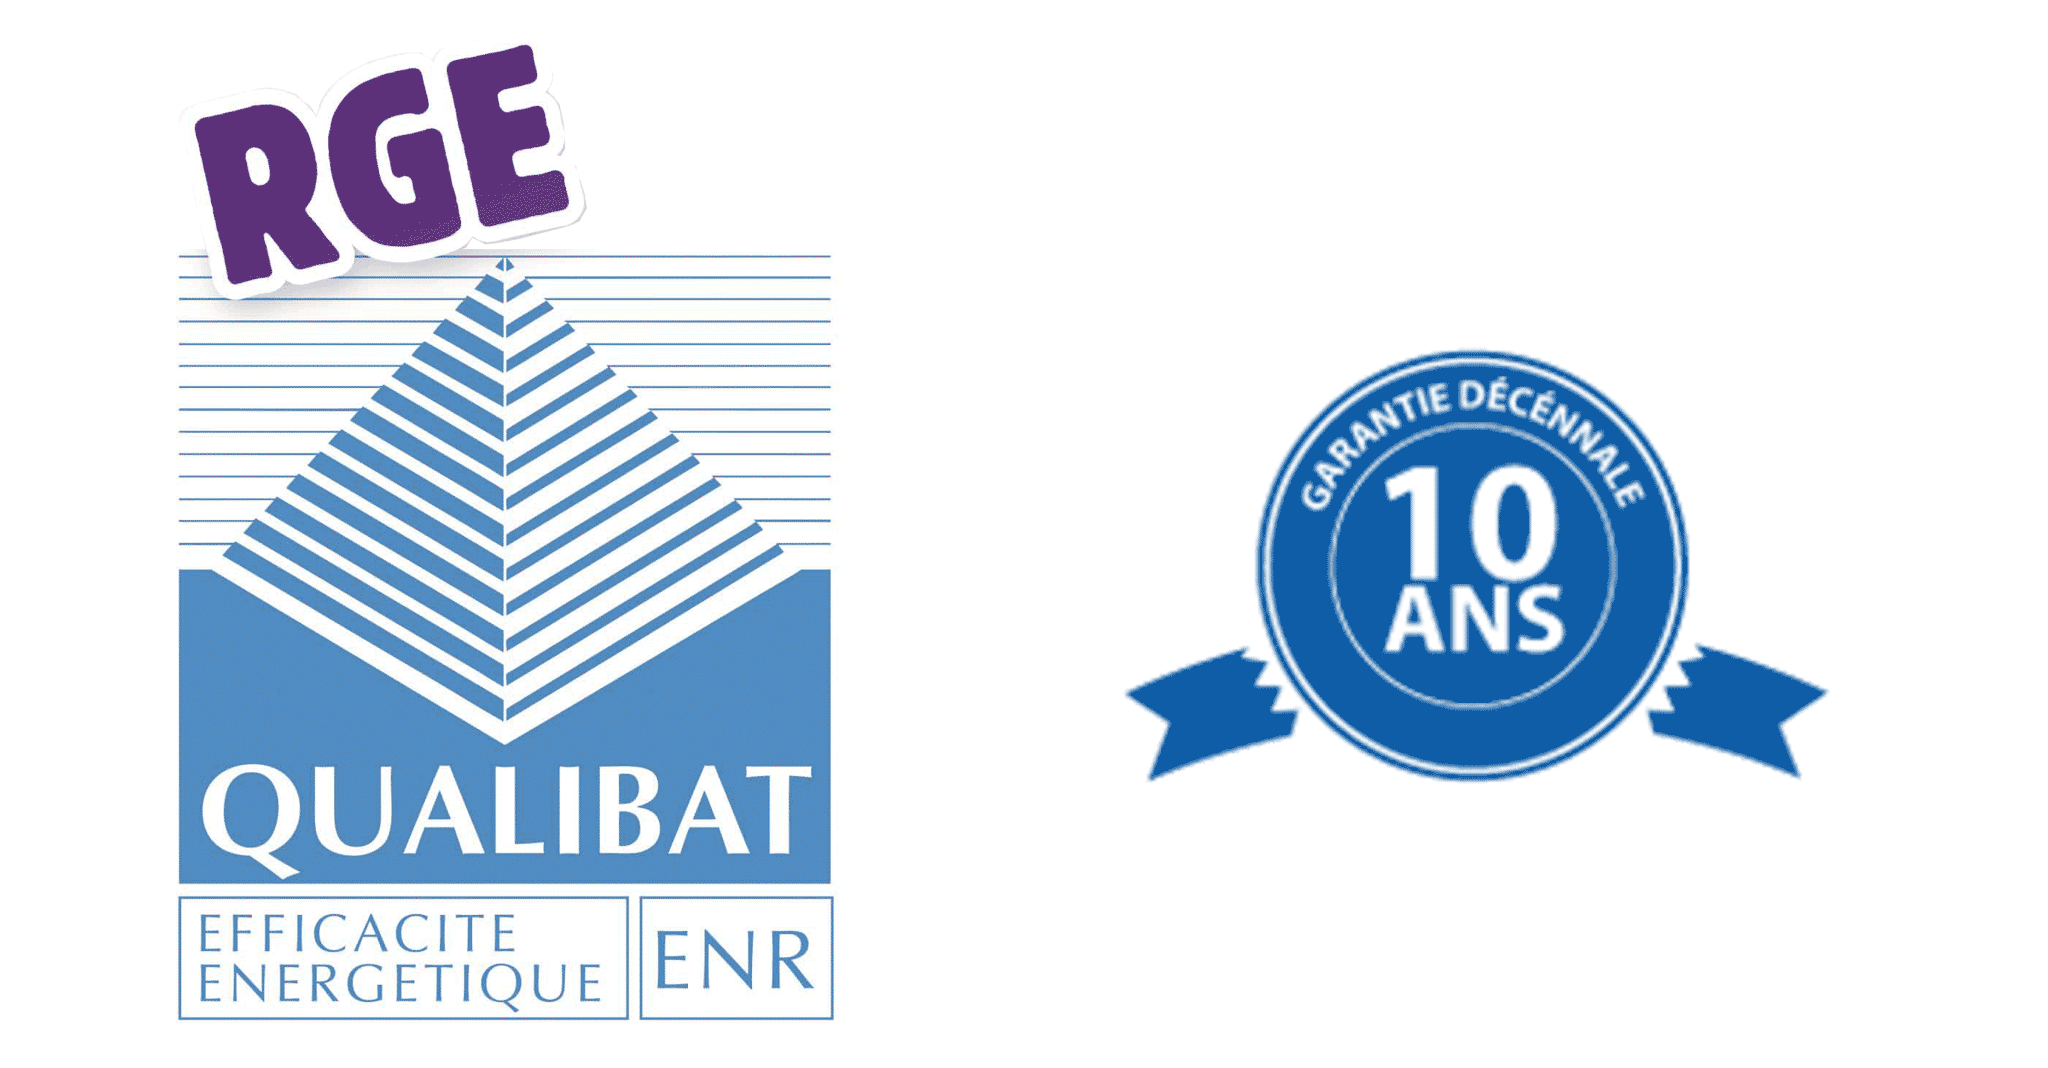 GRAND EST HABITAT certification qualibat RGE